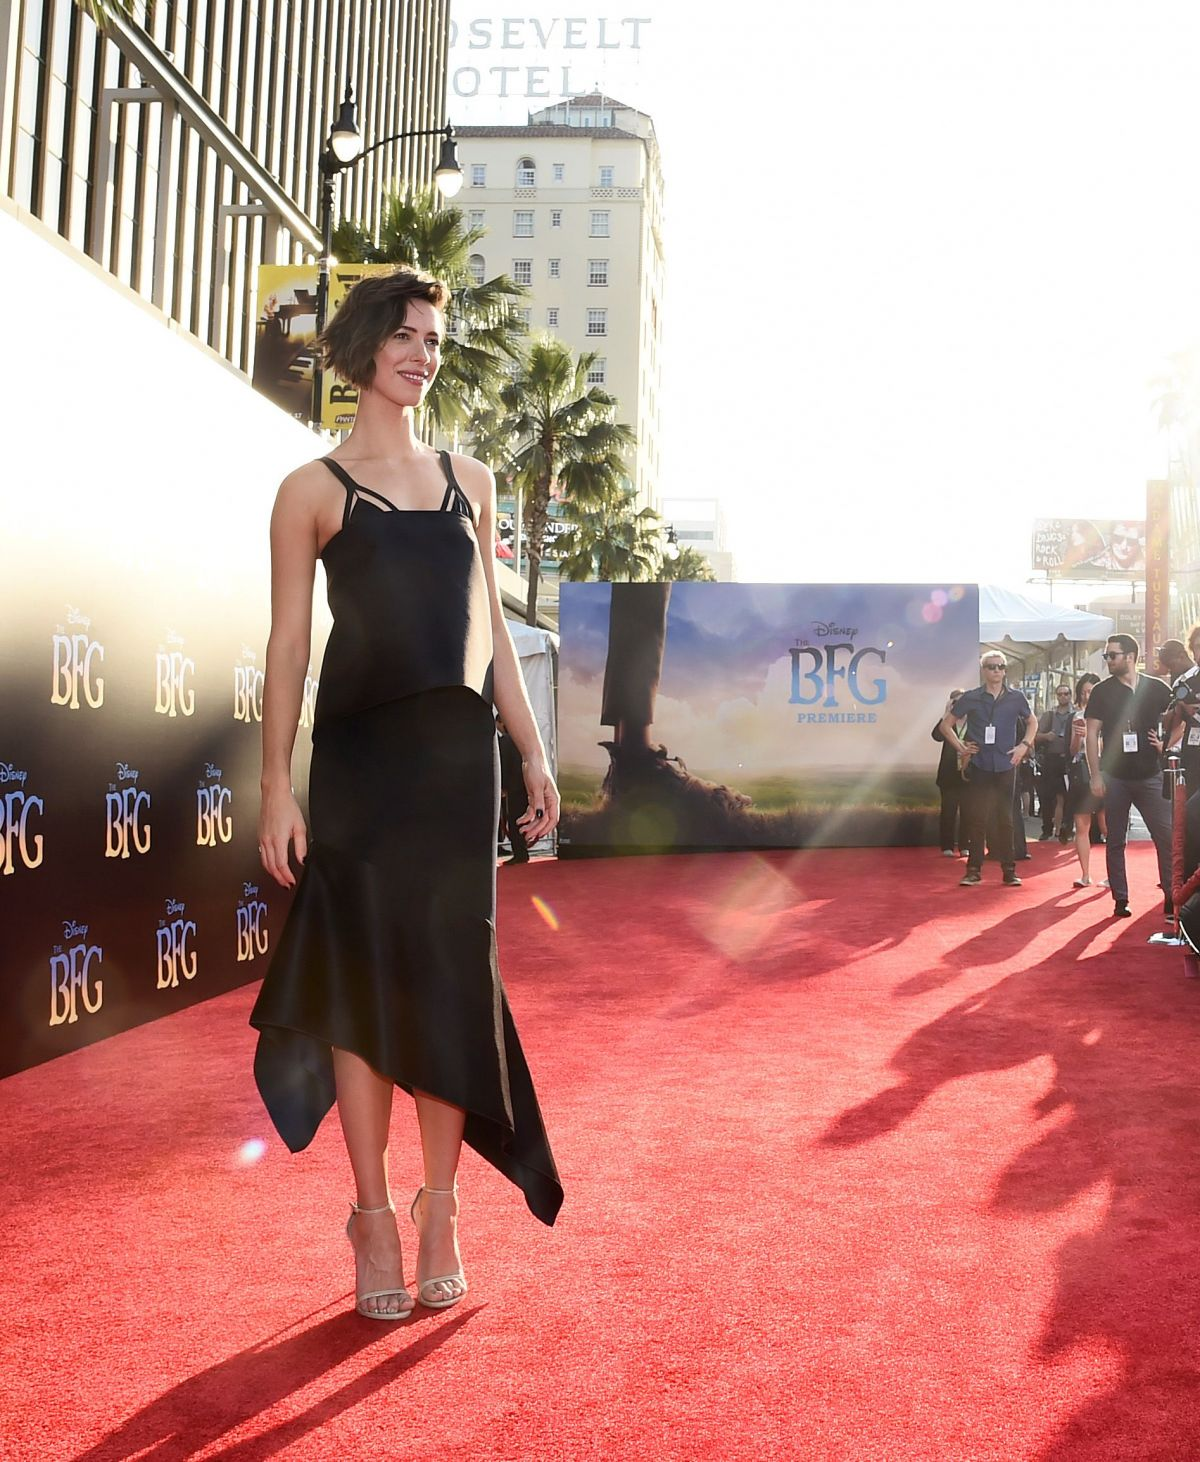 HQ Wallpapers of Rebecca Hall at 'The BFG' Premiere in Hollywood